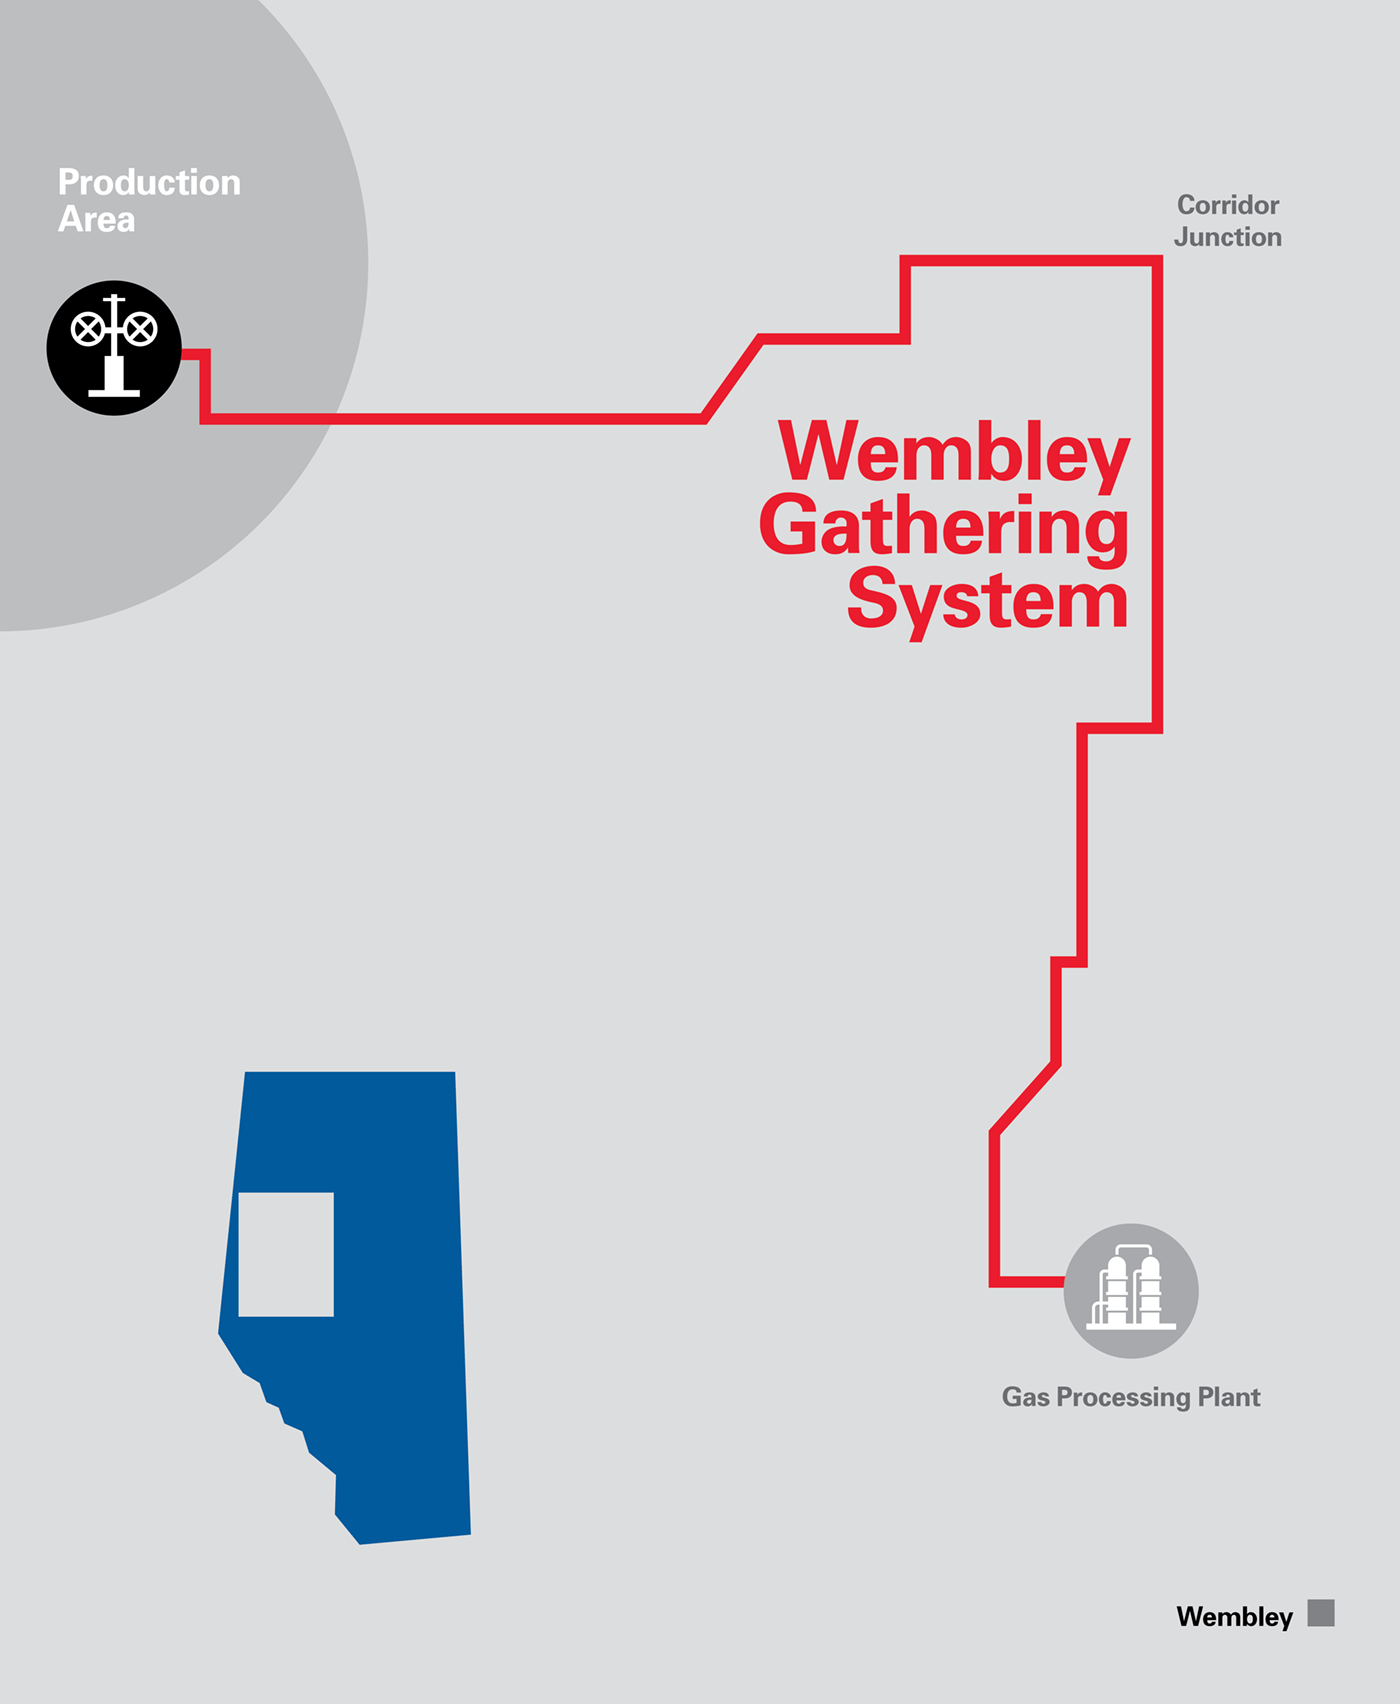 Wembley Gathering System